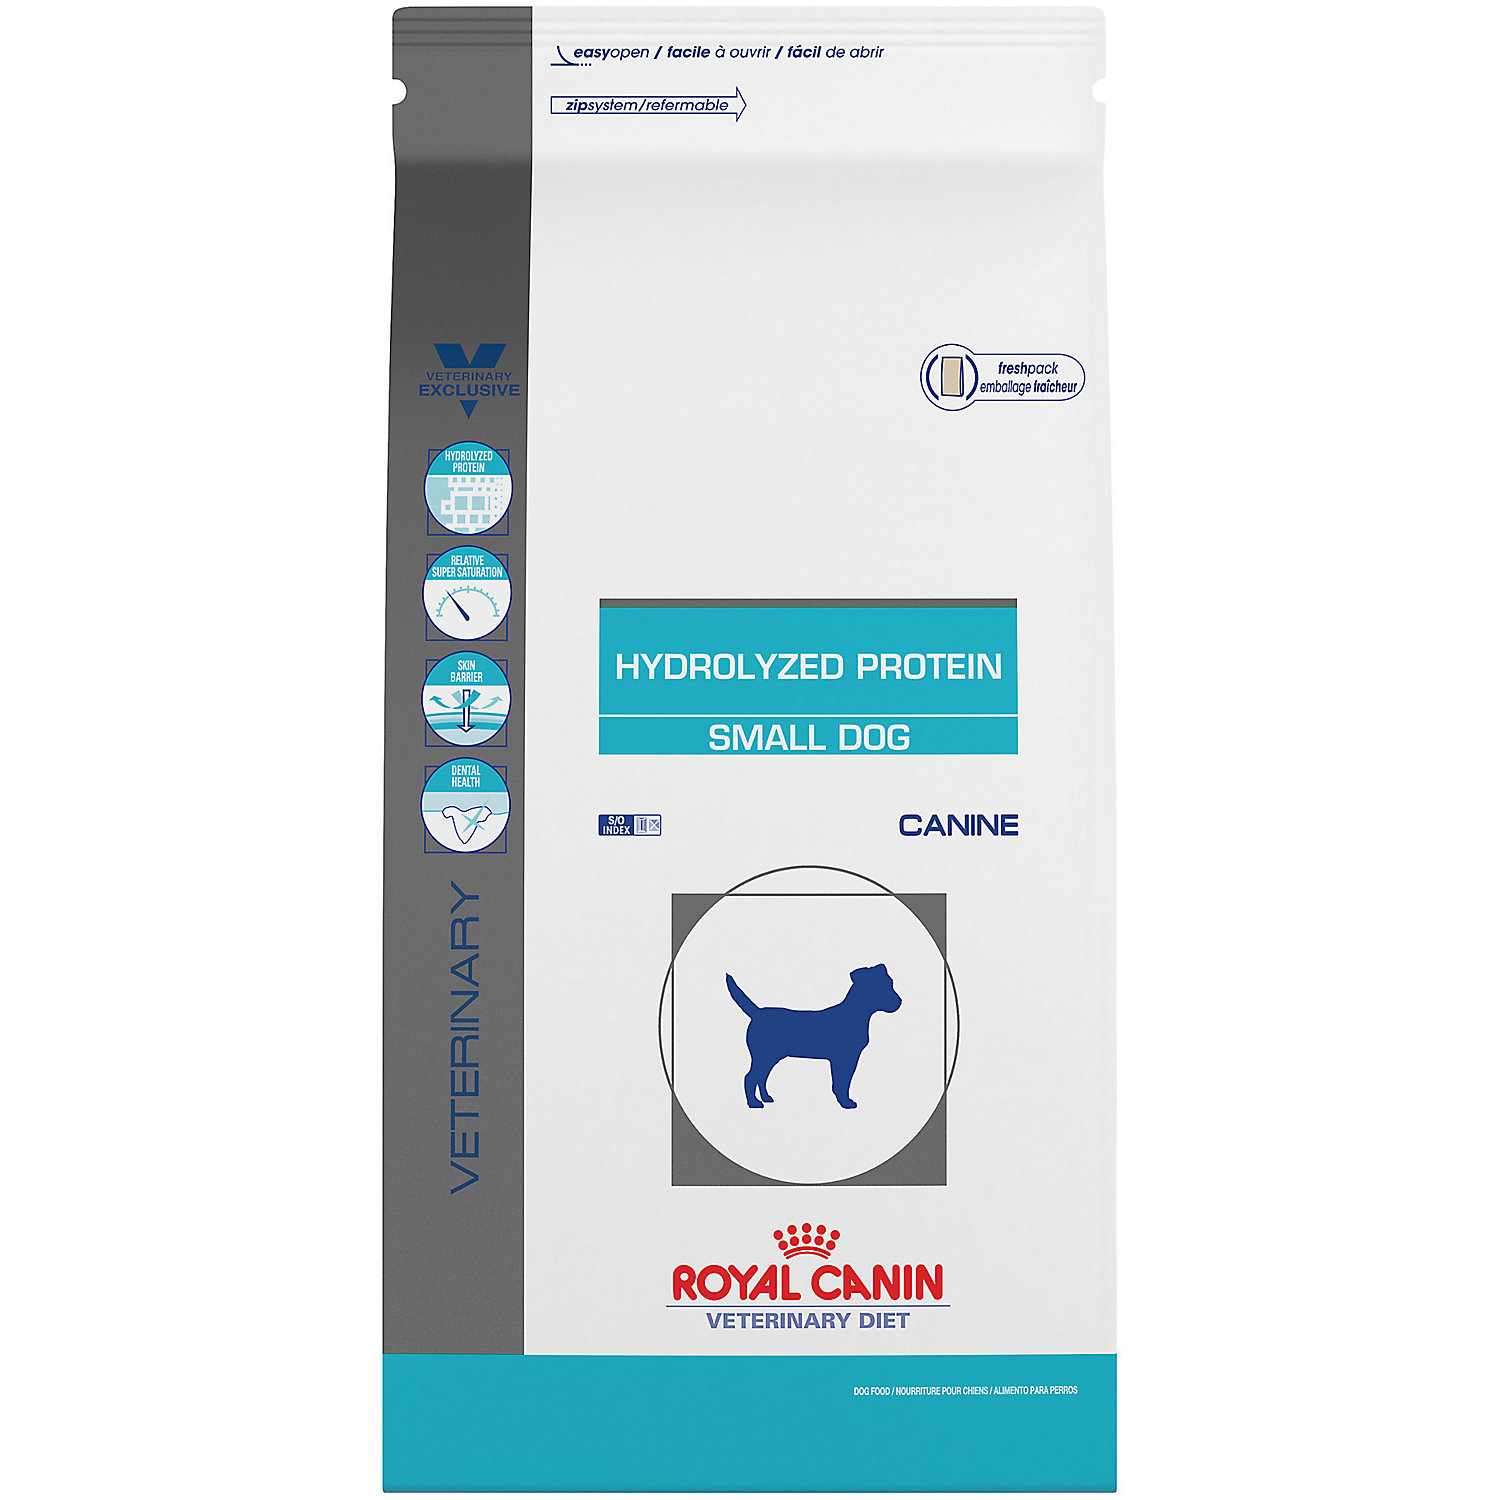 Royal Canin Veterinary Diet Canine Hydrolyzed Protein Small Dog Dry Dog Food 8 8 Lbs Petco Dry Dog Food Dog Food Recipes Royal Canin